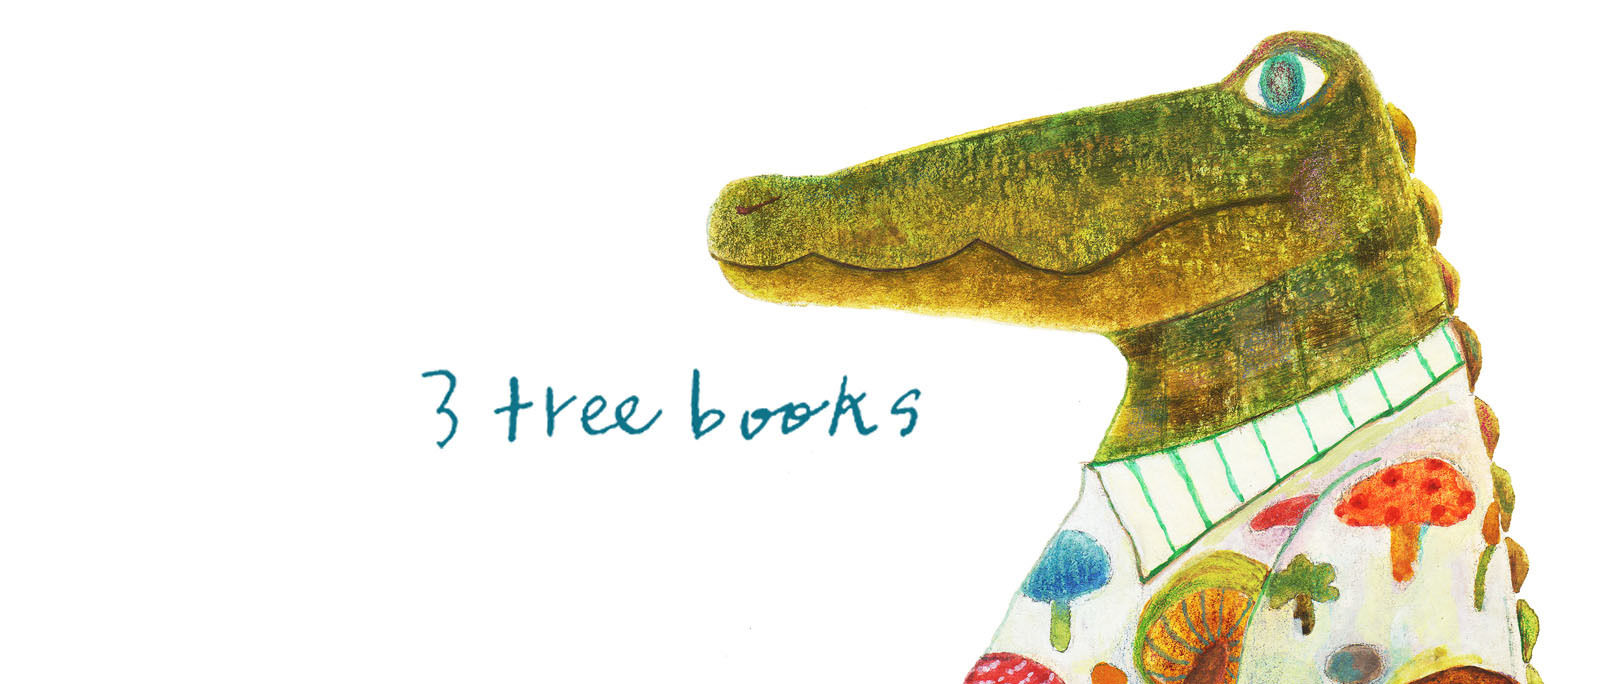 3 tree books